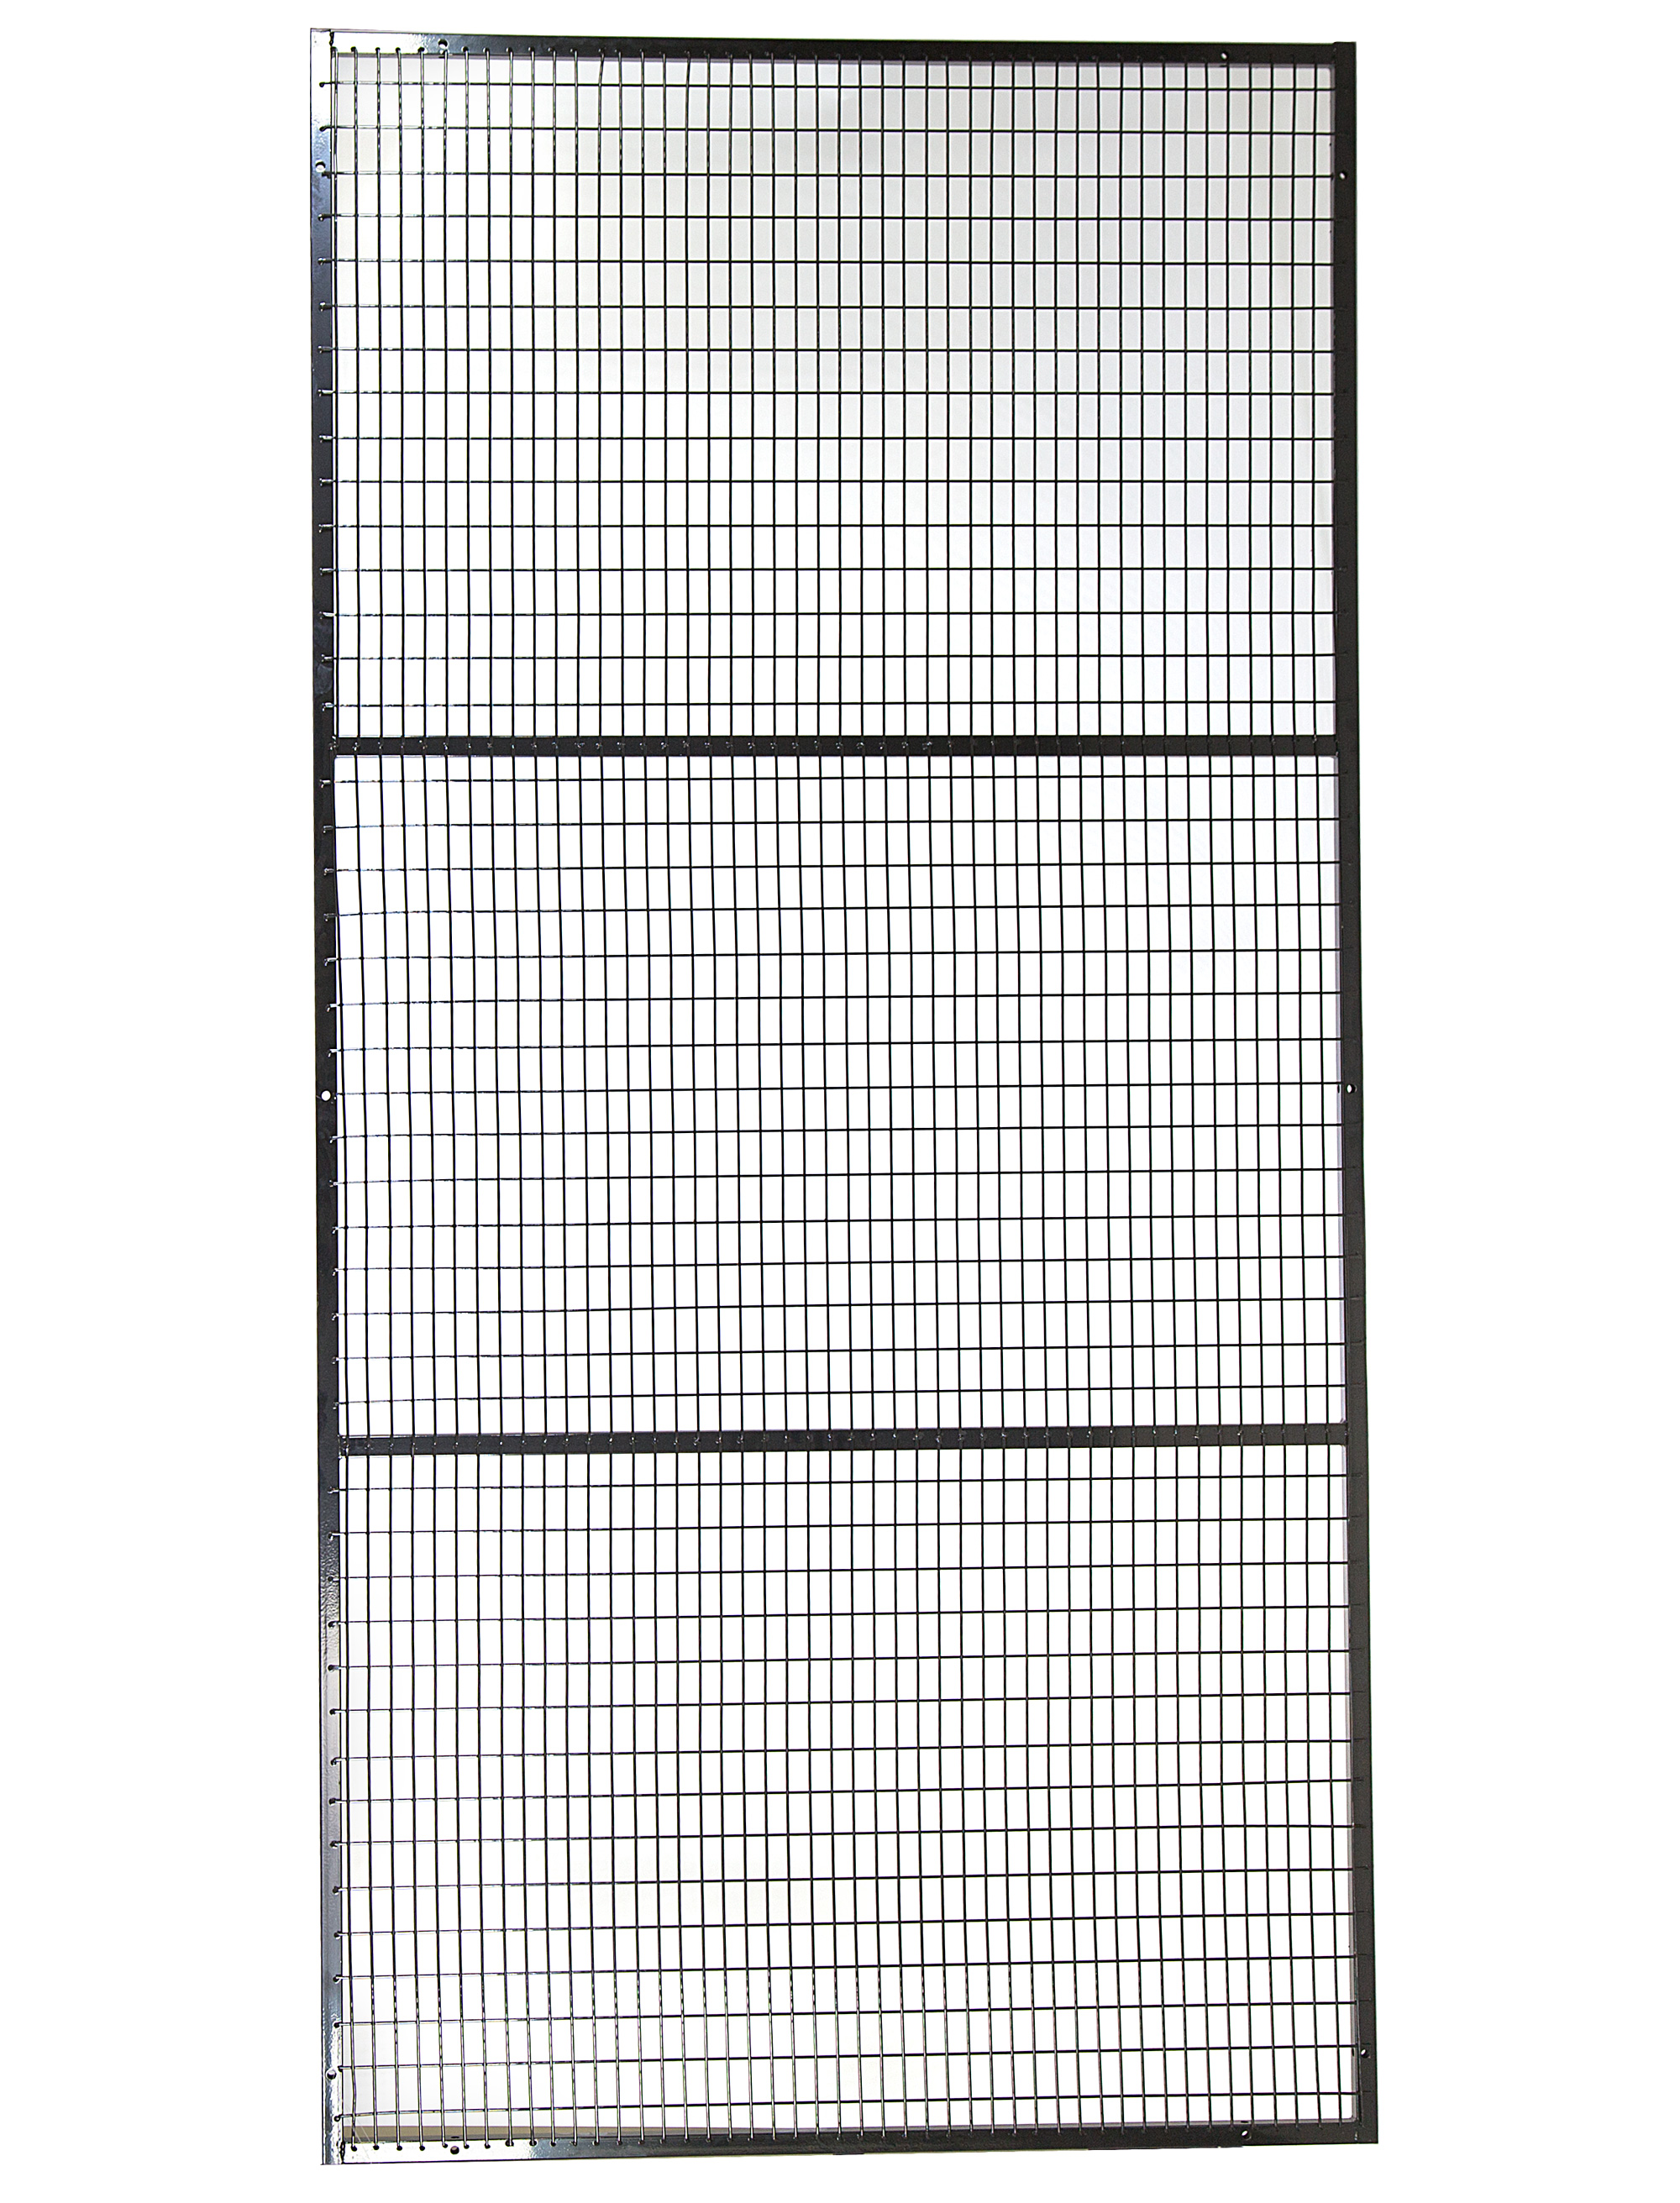 Awesome welded wire mesh sizes area photos electrical and wiring welded wire mesh chart dolgular greentooth Choice Image